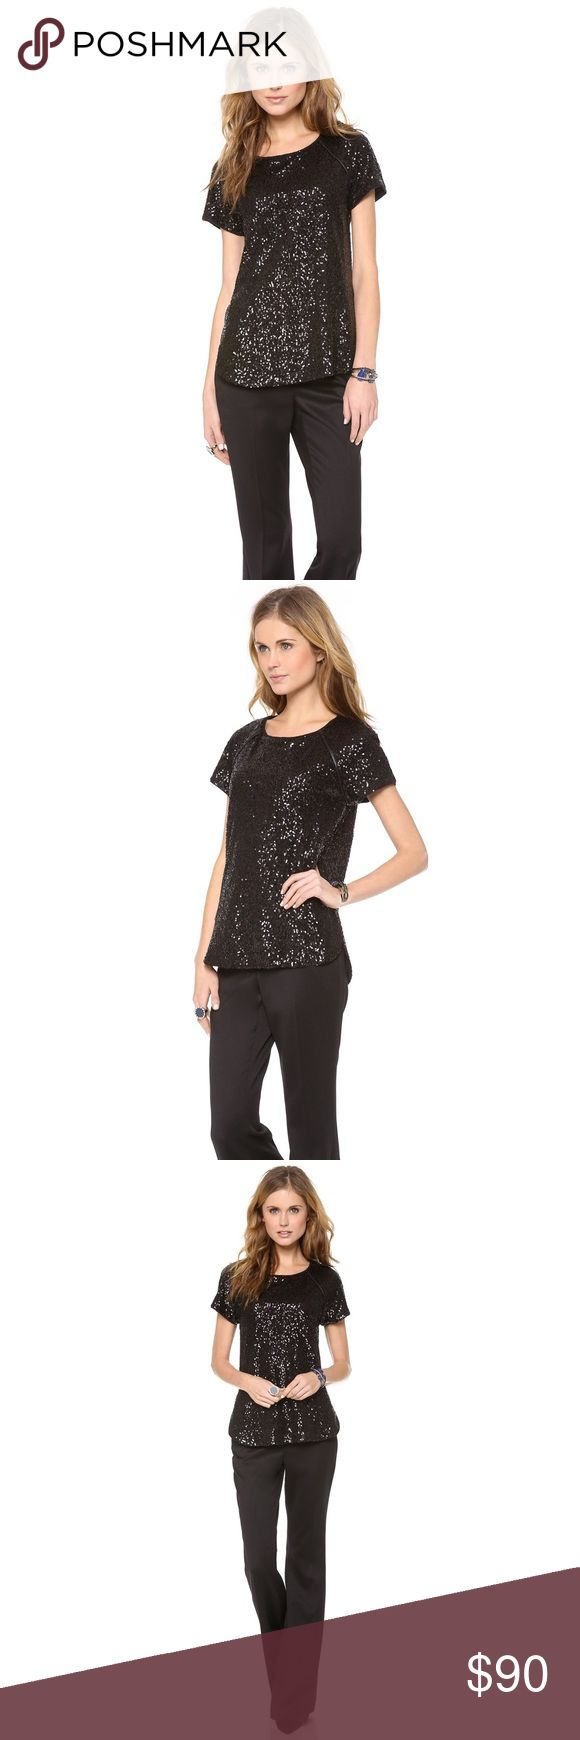 Rachel Zoe Cecile Sequin Blouse Dense sequins bring glamour to this Rachel Zoe blouse. Luxe leather piping trims the raglan seams. High peaks on a curved hem add a casual element. Short sleeves. Lined.  Fabric: Sequined mesh. Shell: 100% polyester. Trim: 100% lambskin. Dry clean. Like new!!!! MEASUREMENTS: Length: 26in / 66cm, from shoulder Rachel Zoe Tops Blouses